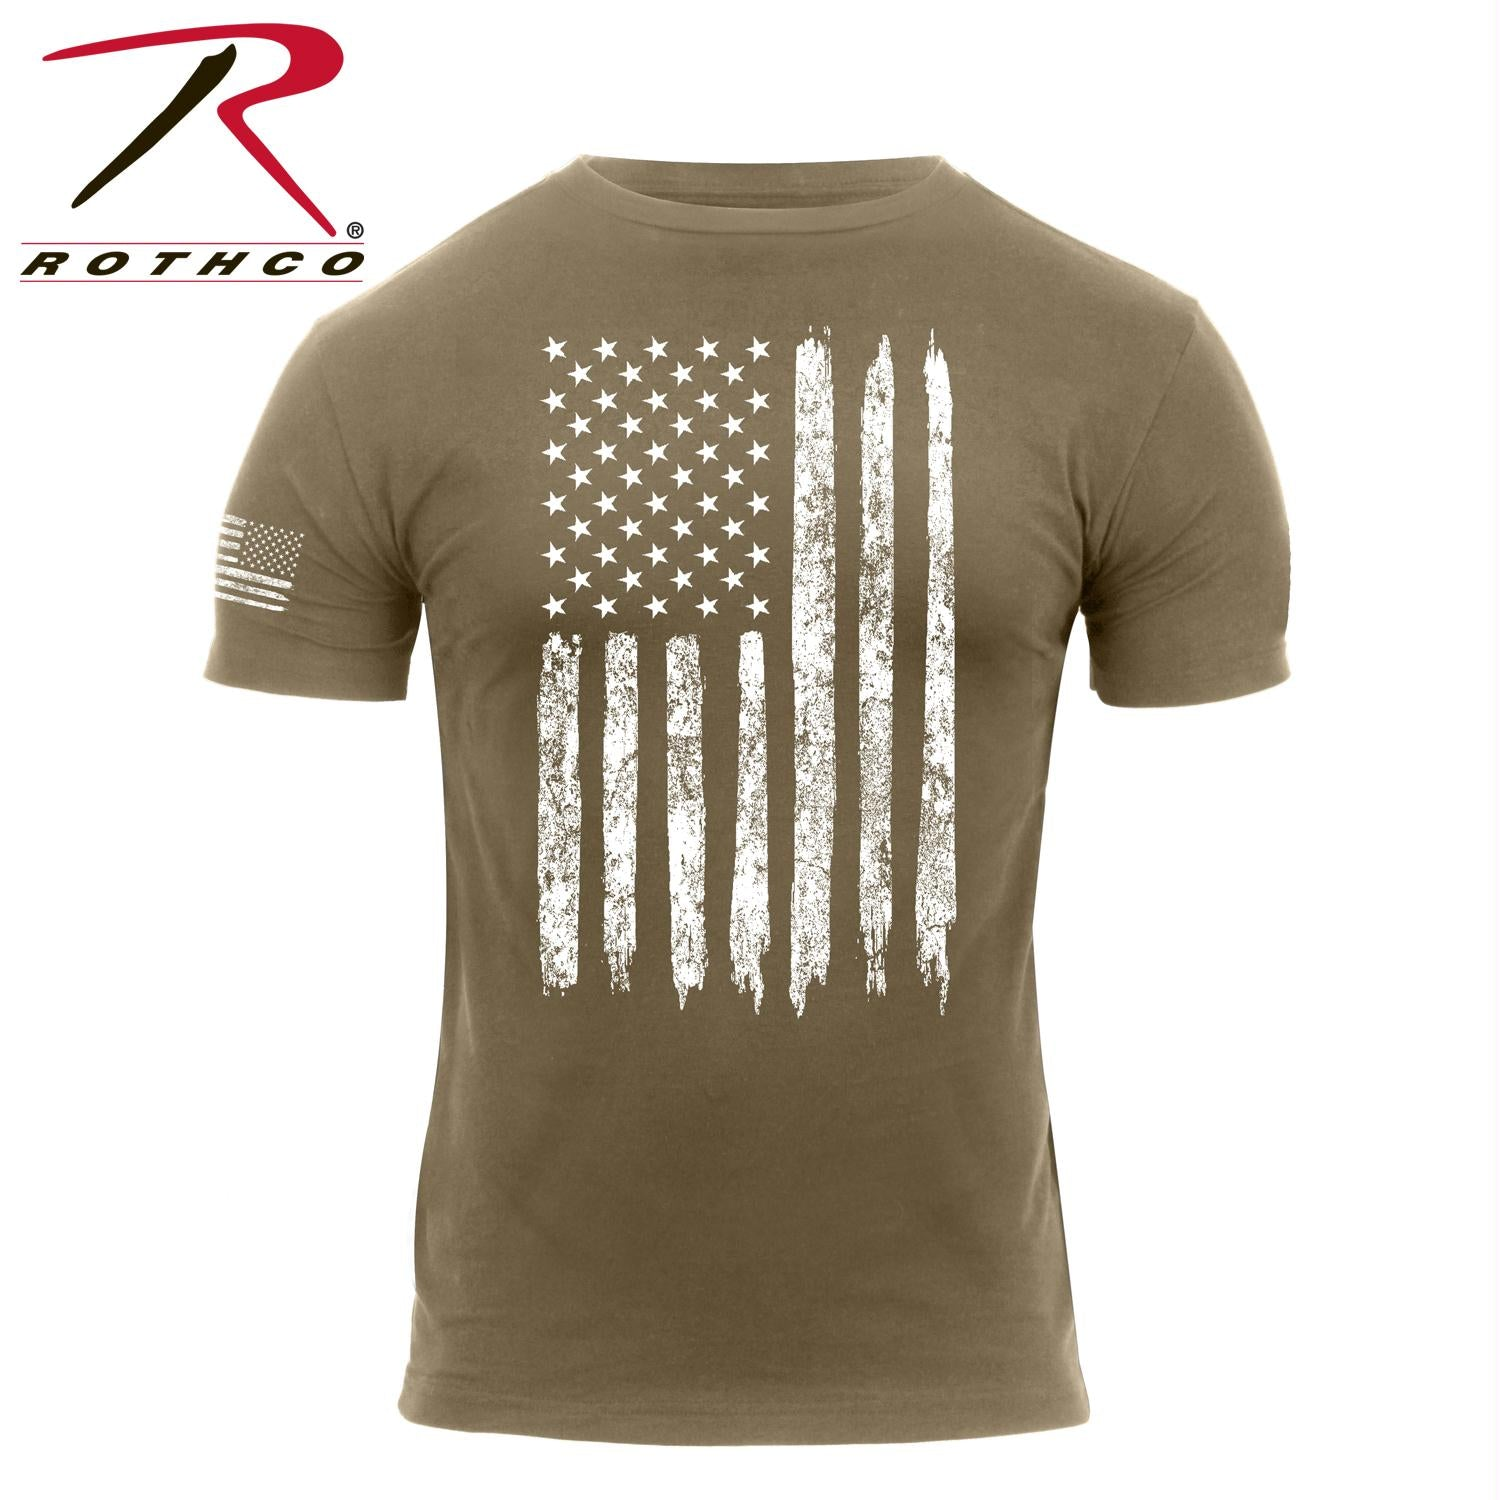 Rothco Distressed US Flag T-Shirt - Coyote Brown / XL